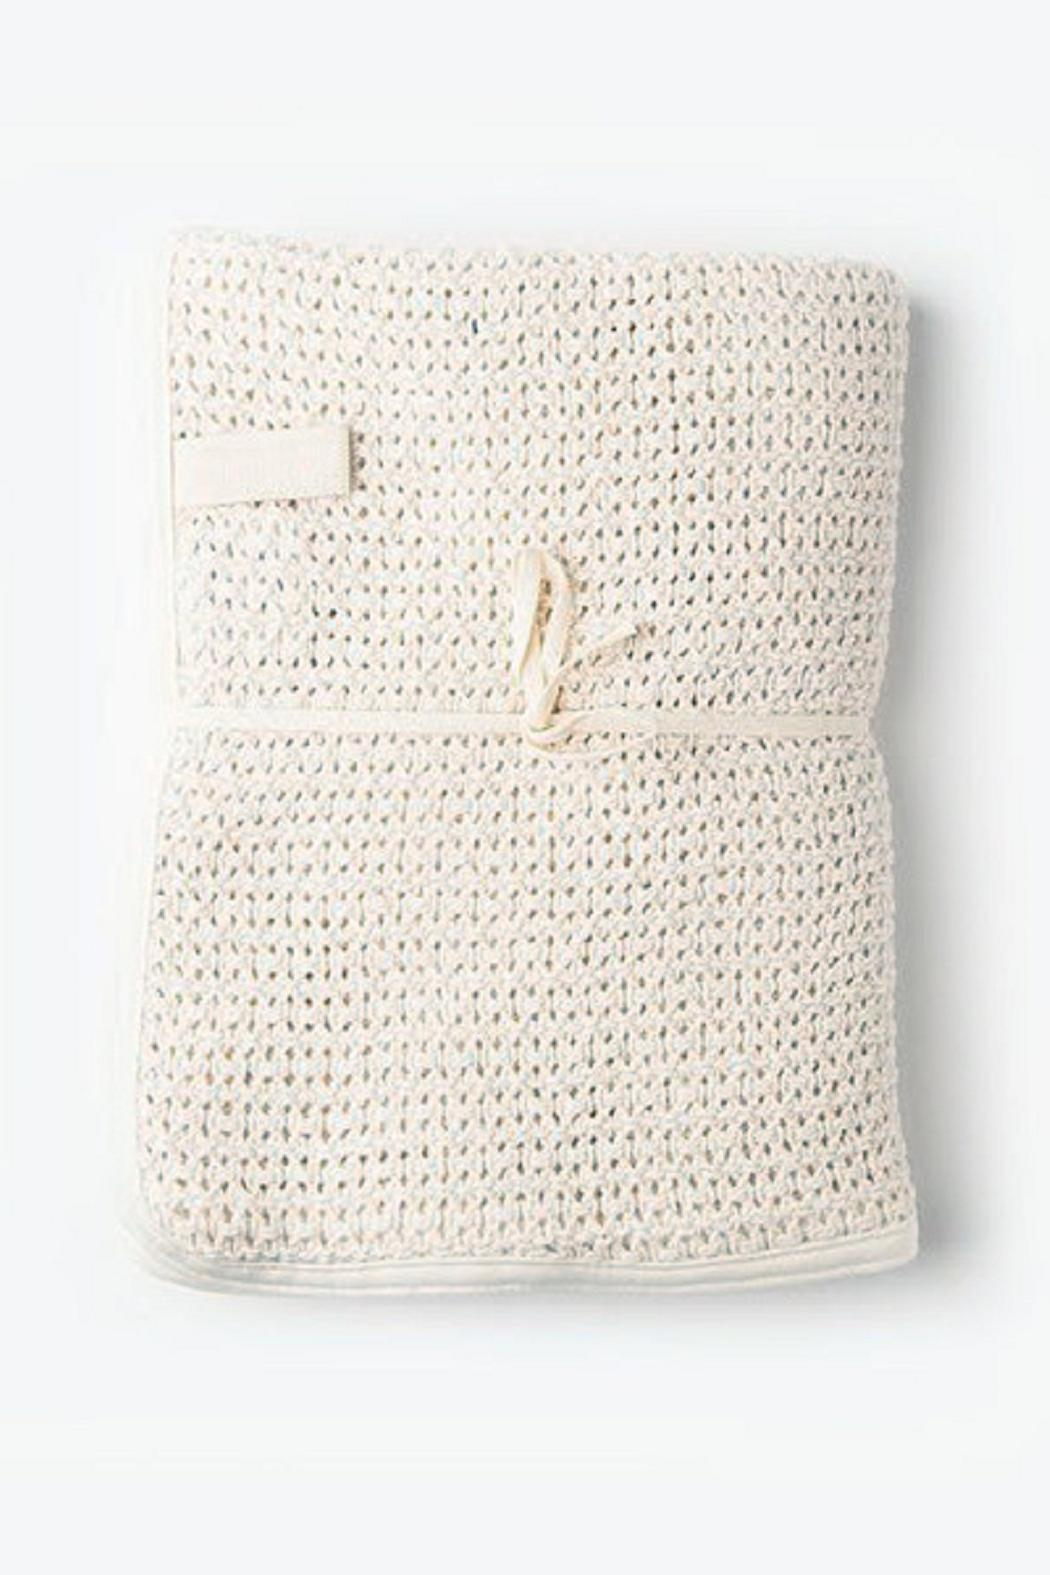 a394a3ca96 Fog Linen Work Woven Baby Blanket from Canada by Mikko Espresso ...